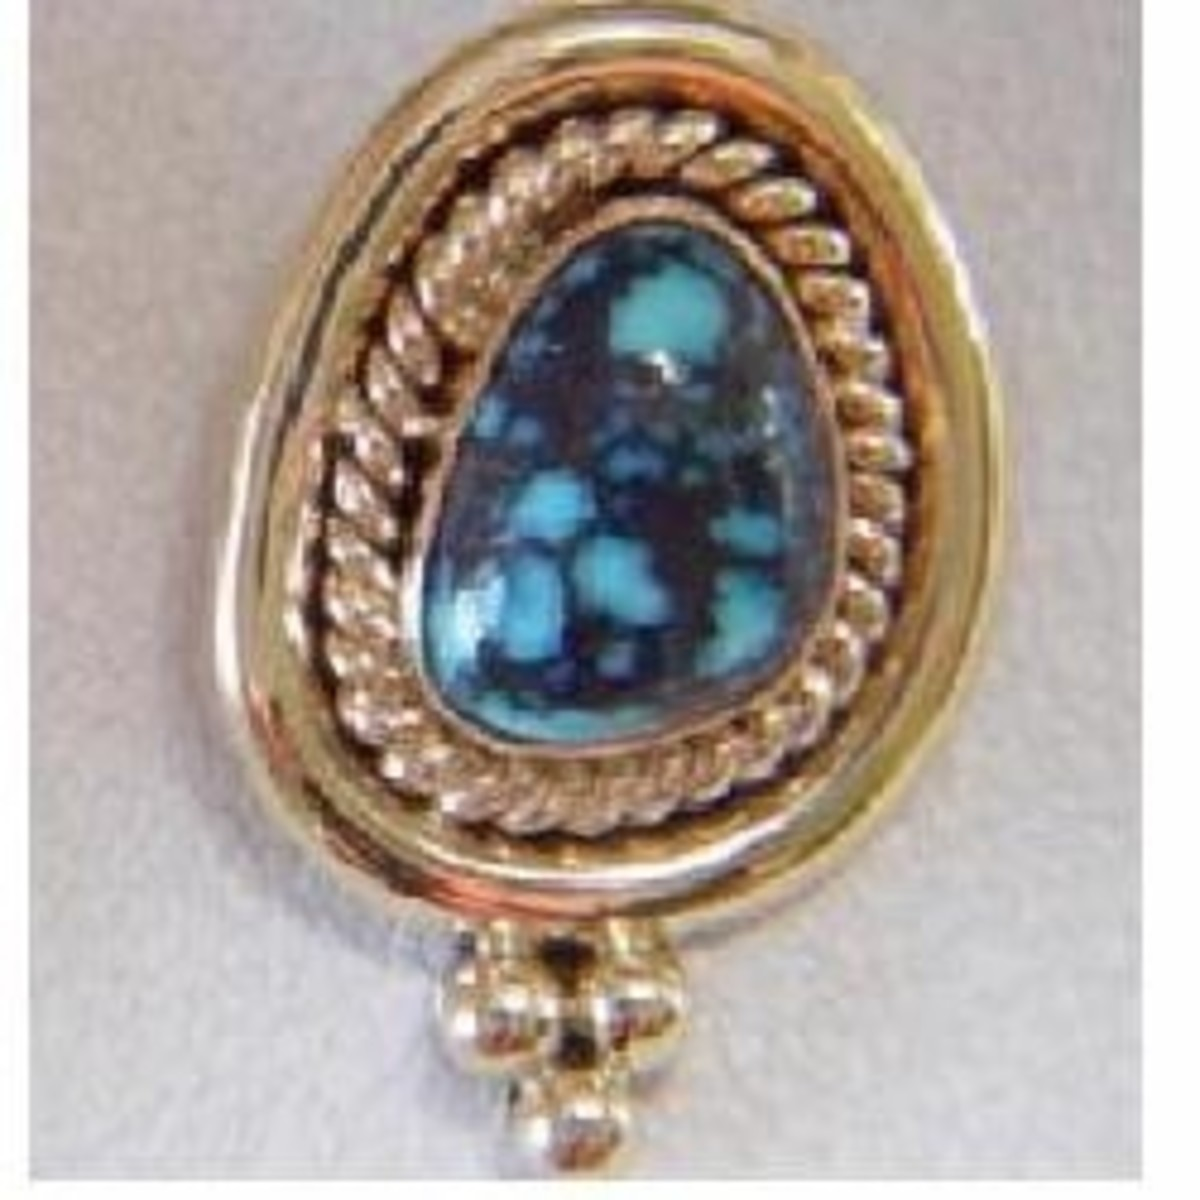 Top 10 American Southwest Turquoise Mines ~ A Purely Subjective List